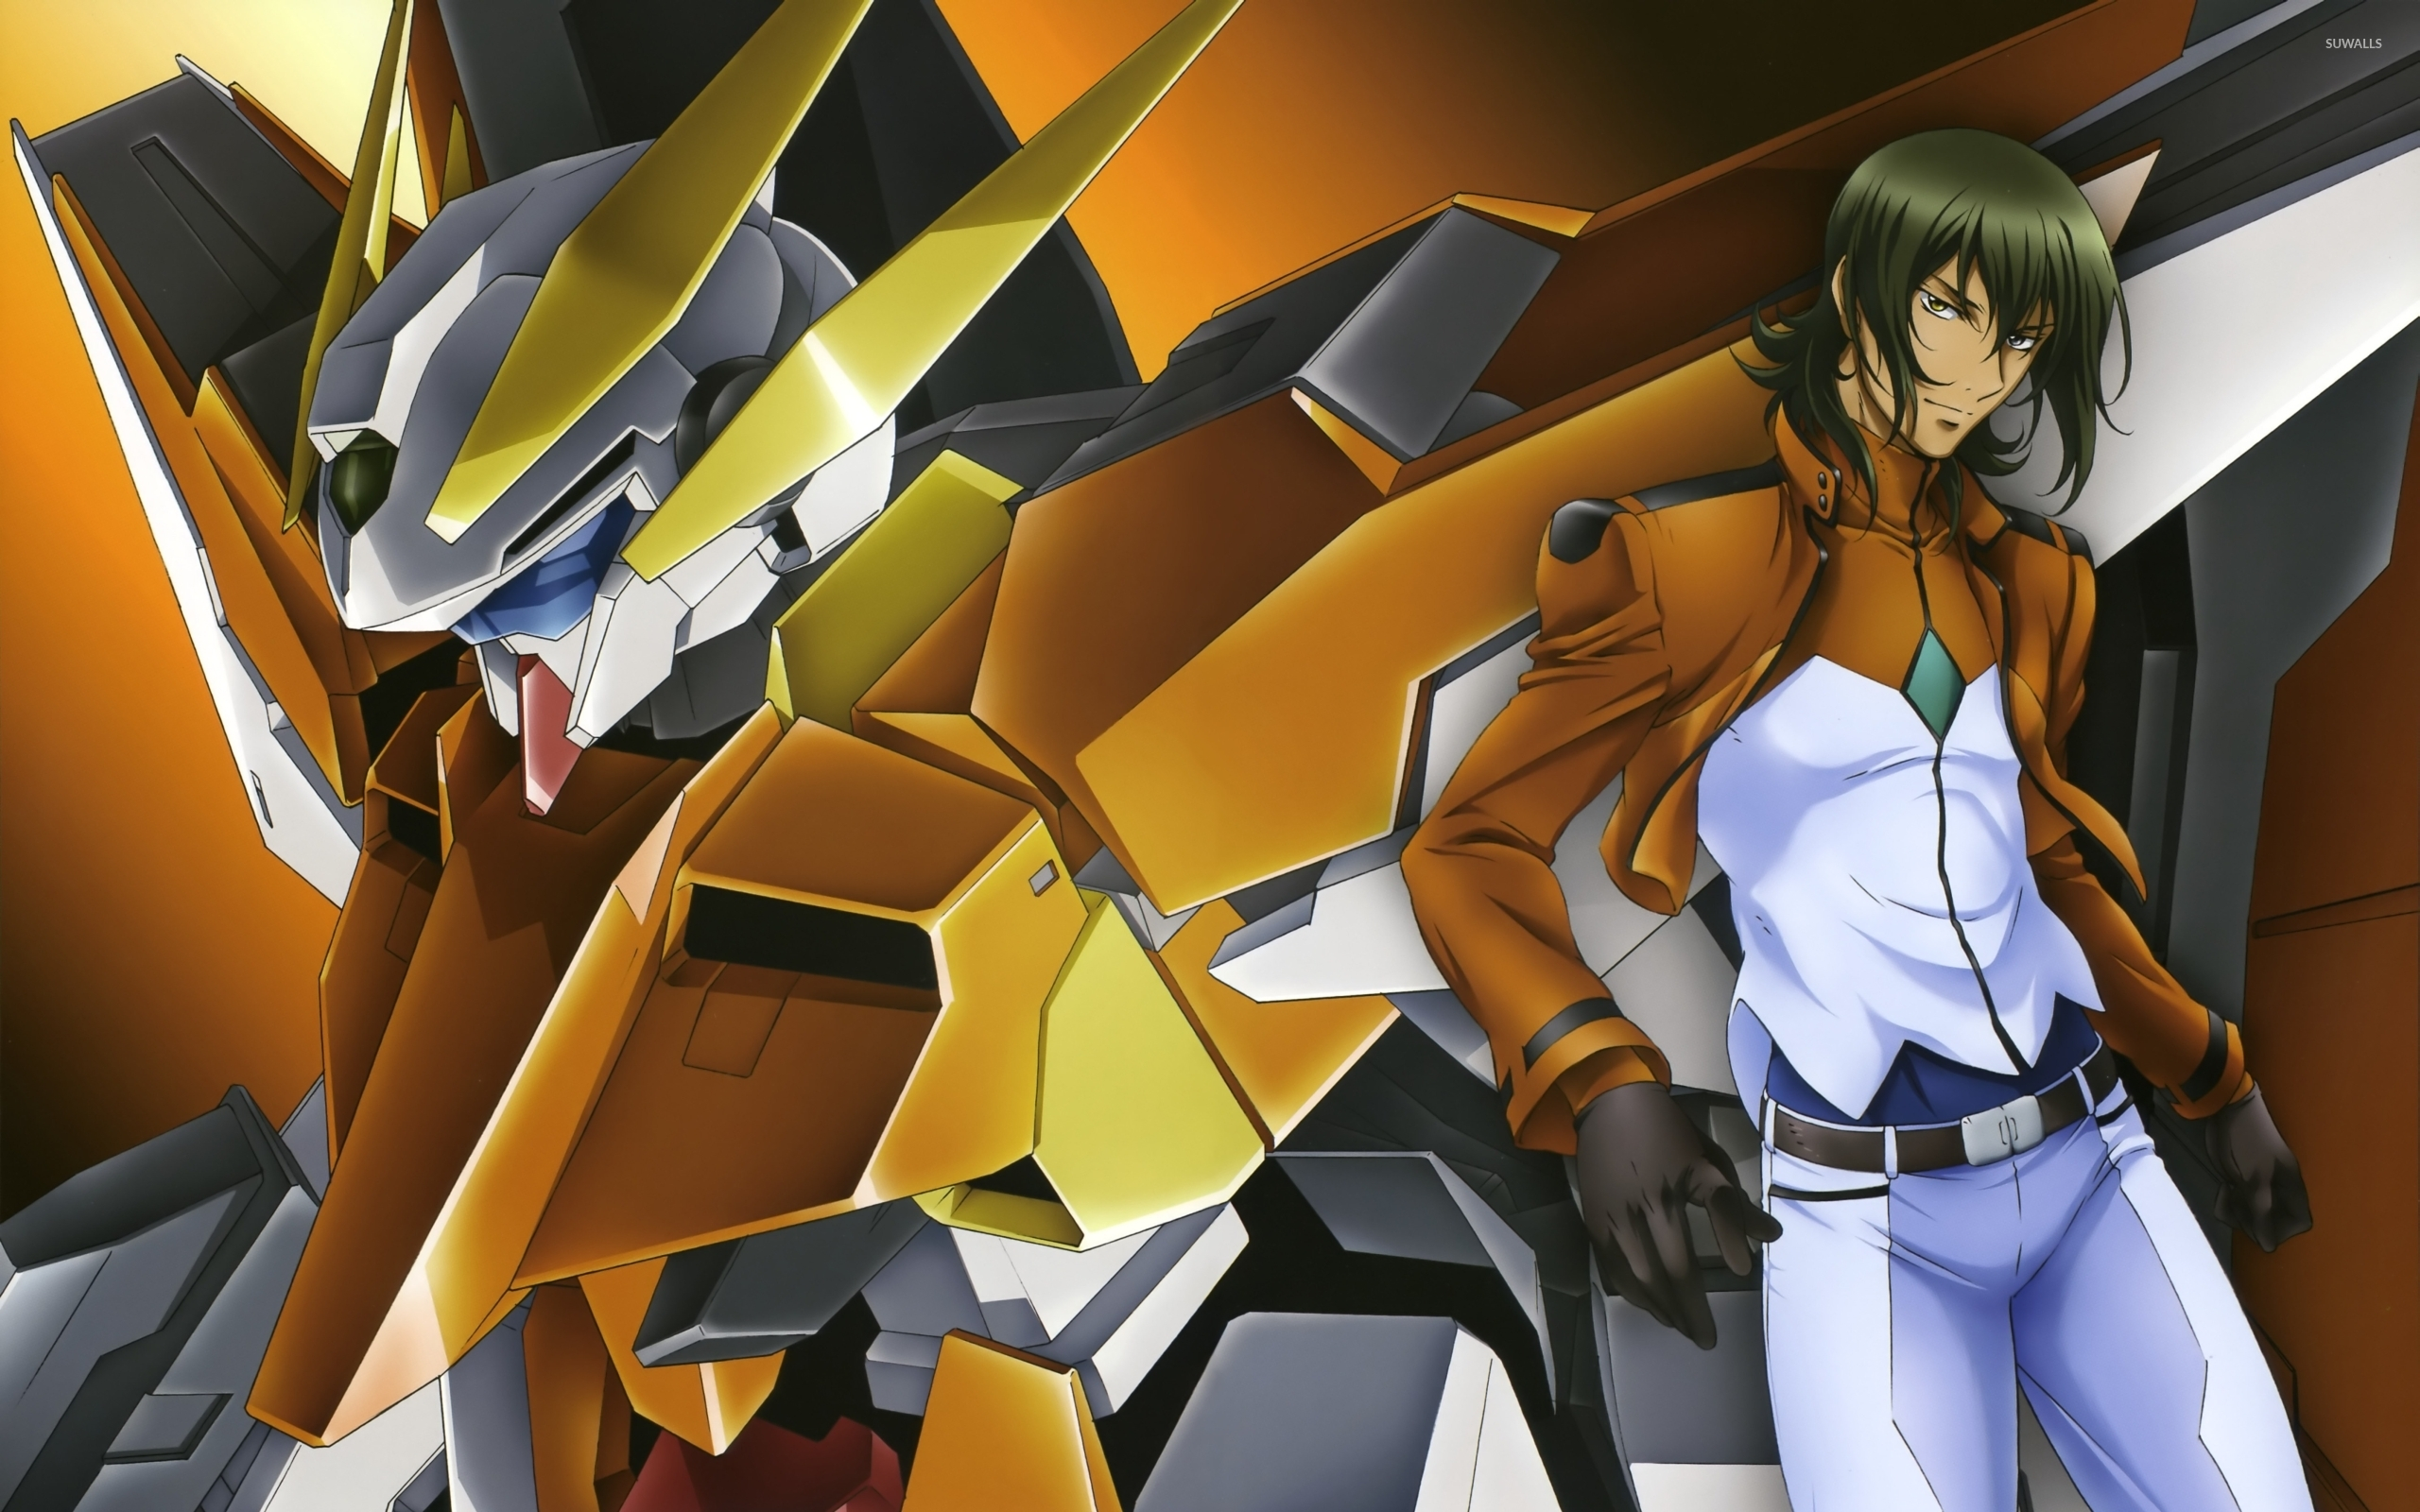 Mobile Suit Gundam 00 Desktop and mobile wallpaper Wallippo 2560x1600